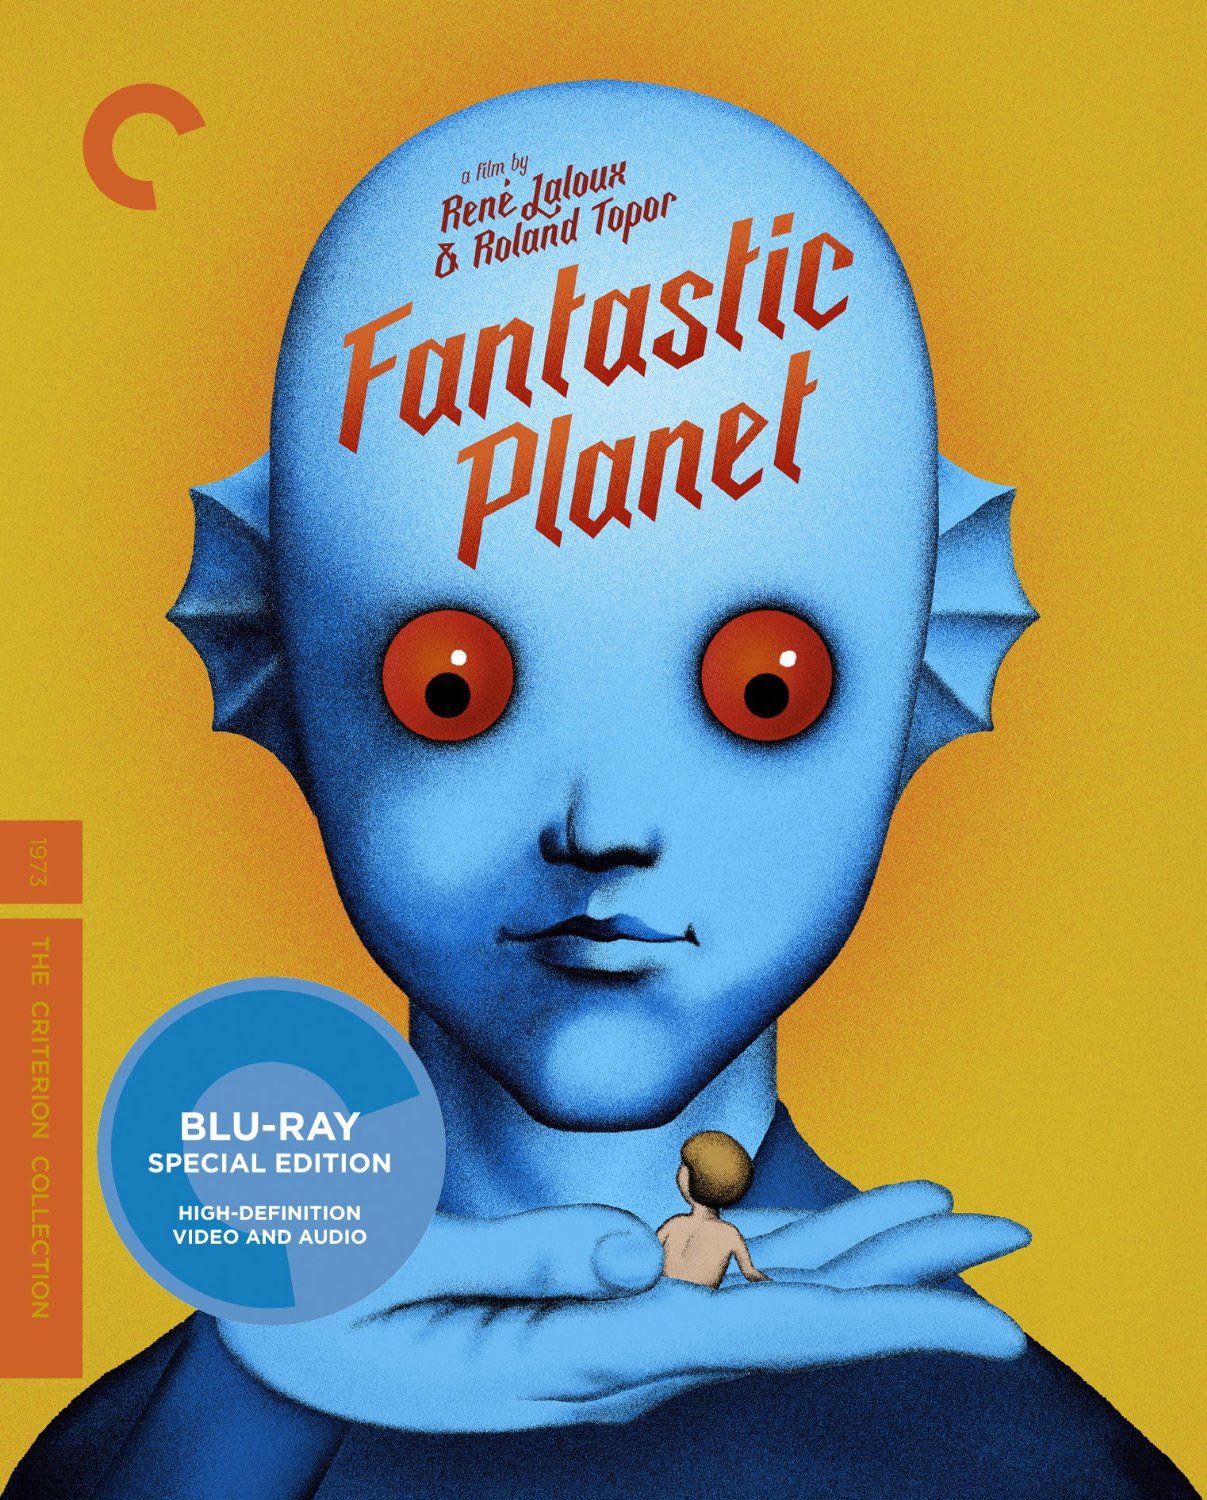 criterion_fantasticplanet_cover